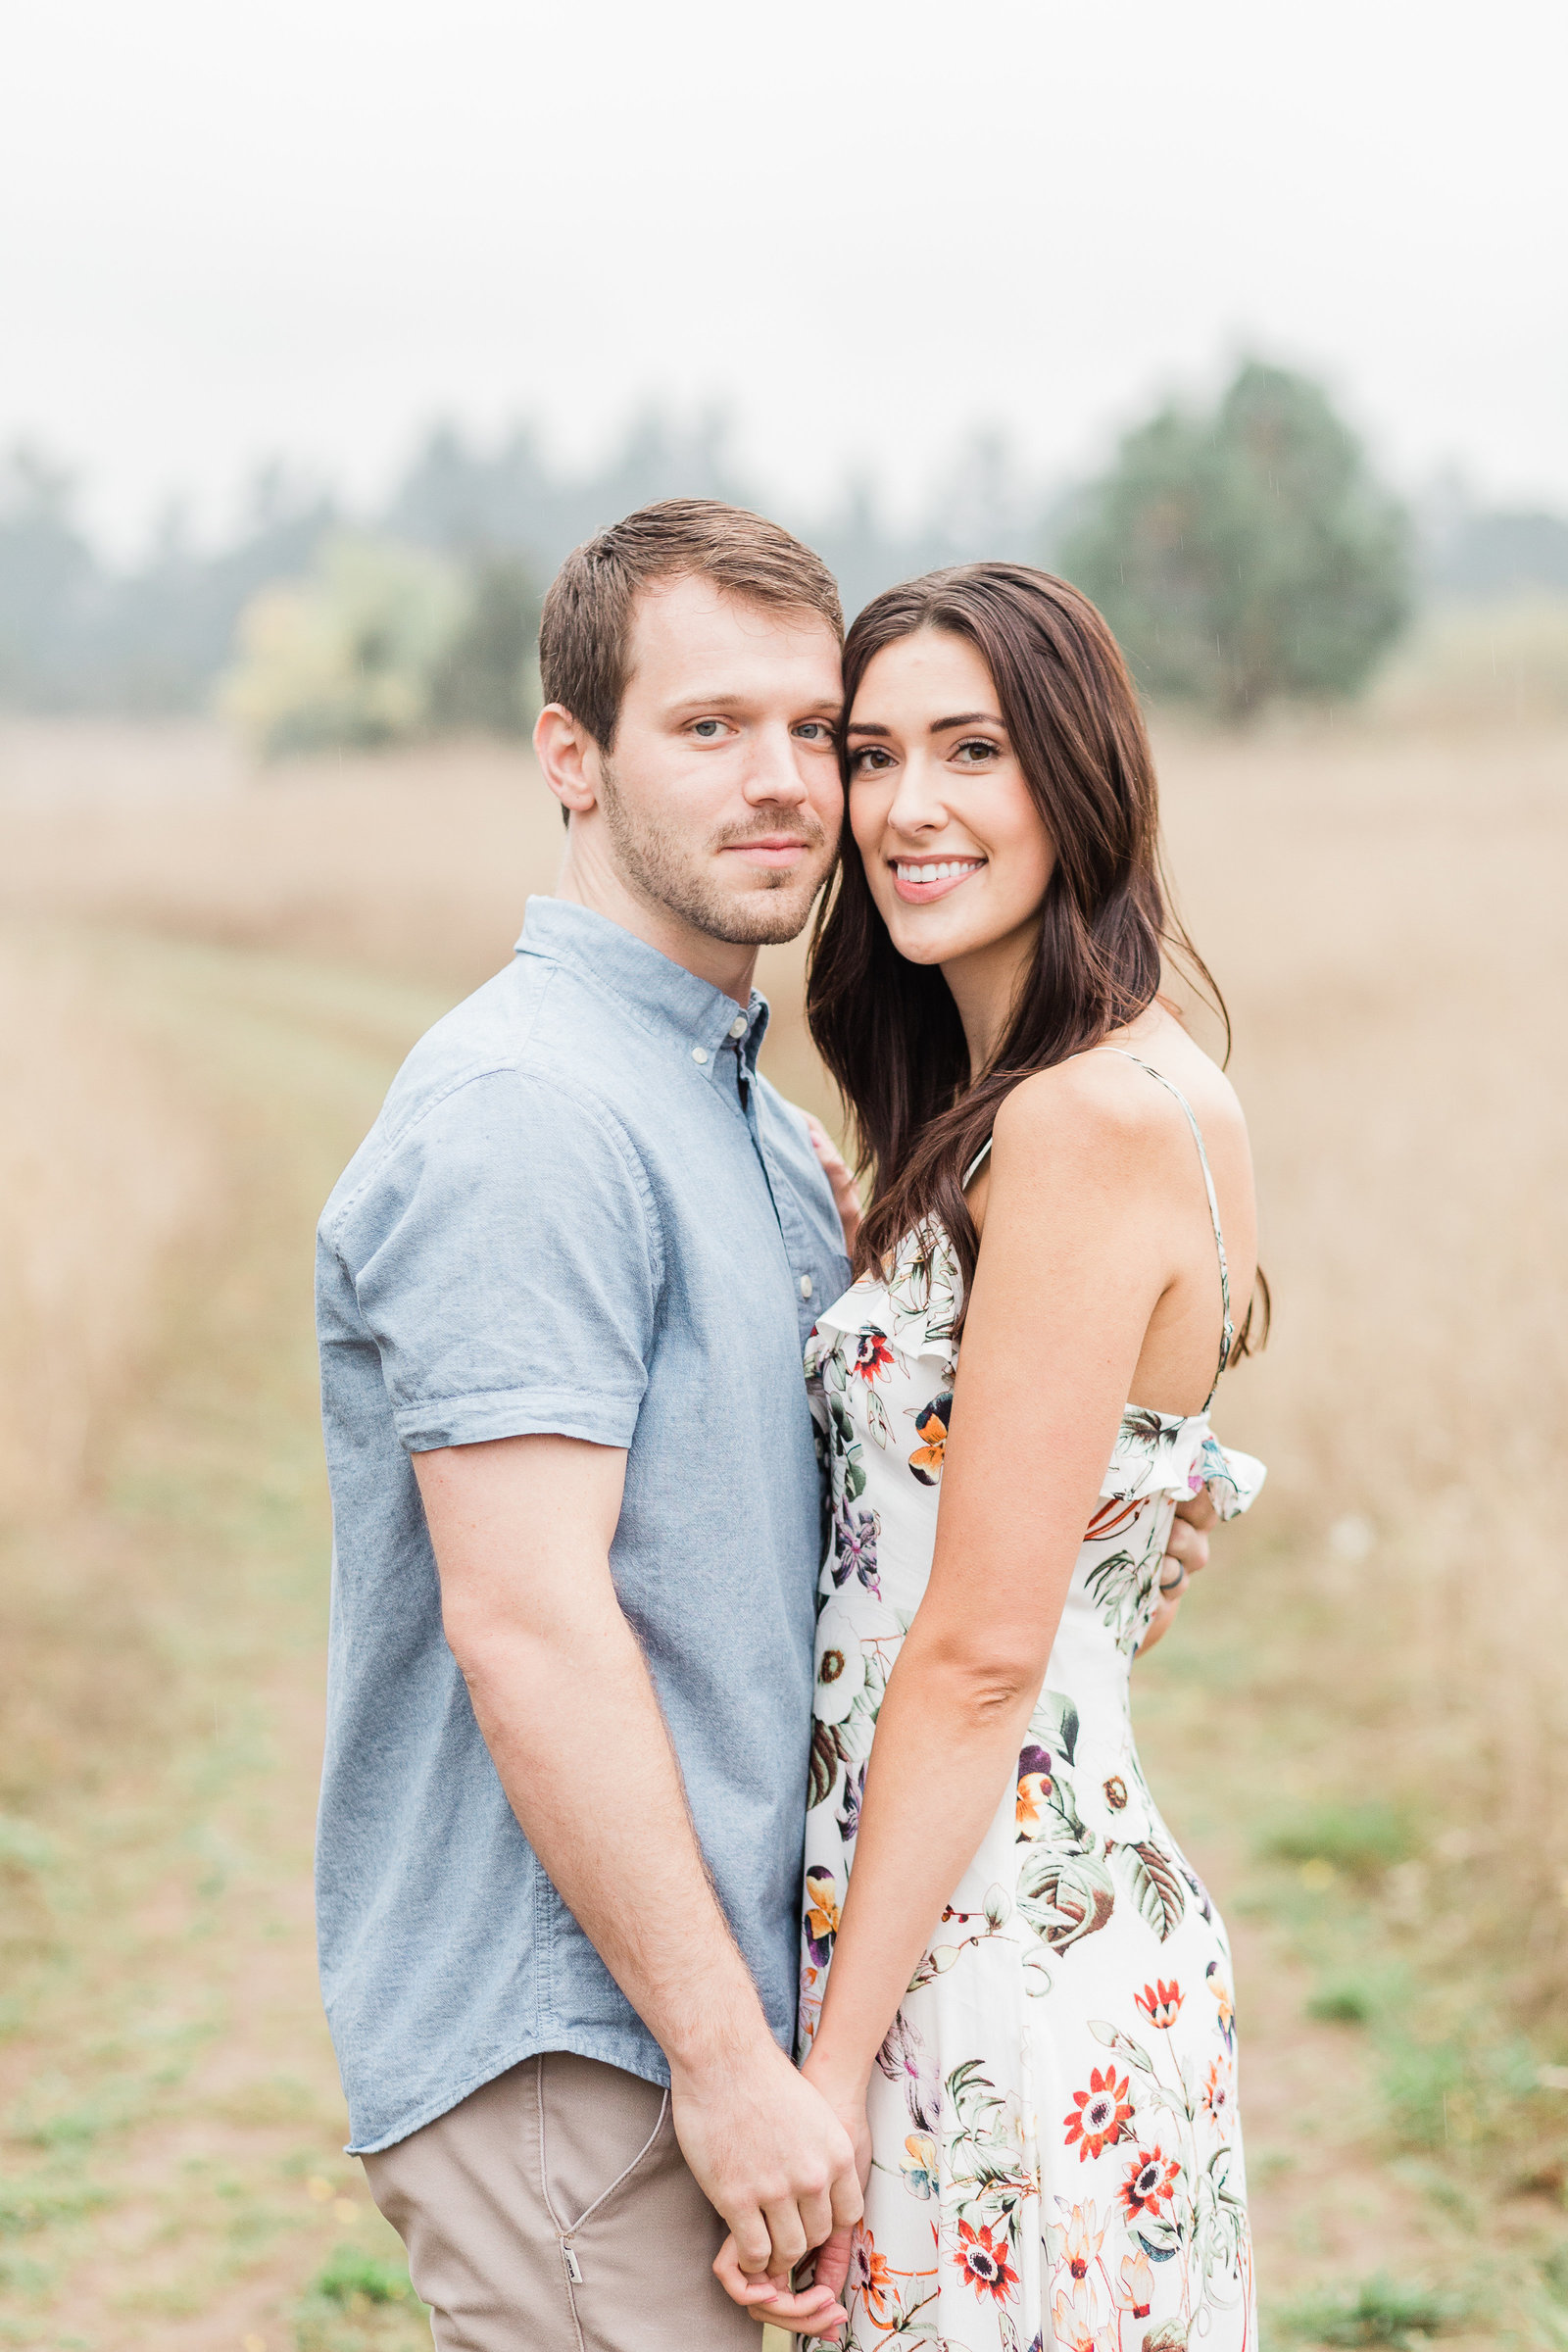 Taylor-TJ-Engagements-Georgia-Ruth-Photography-65